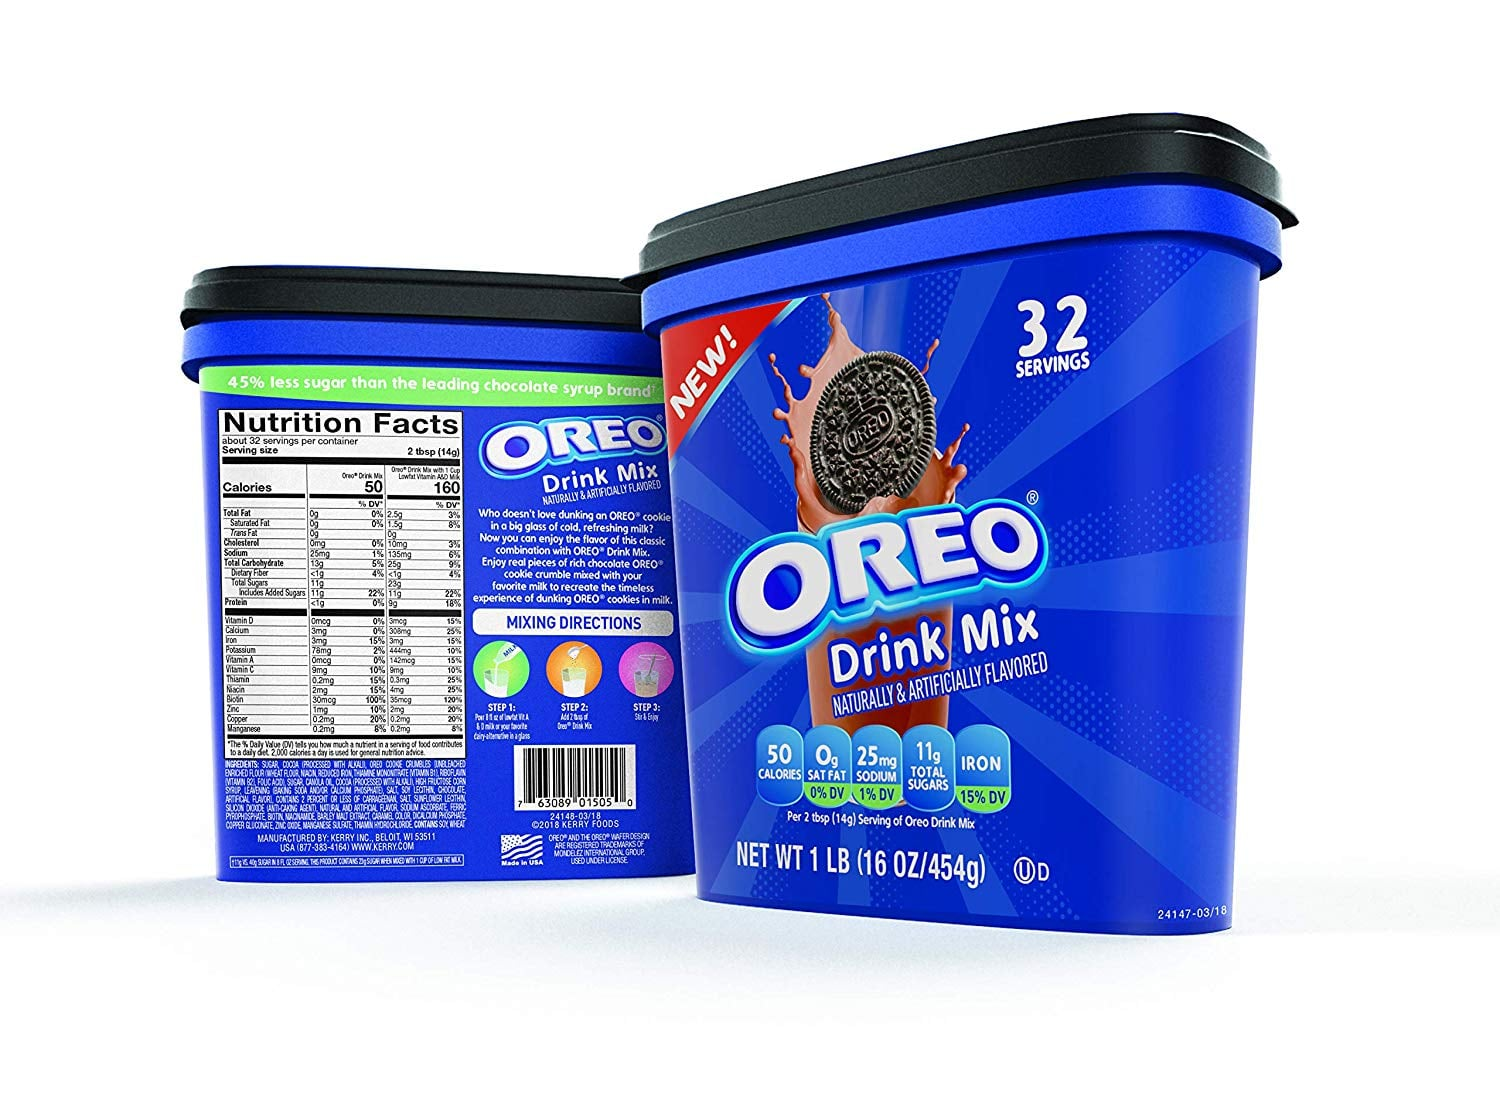 Image result for oreo drink mix